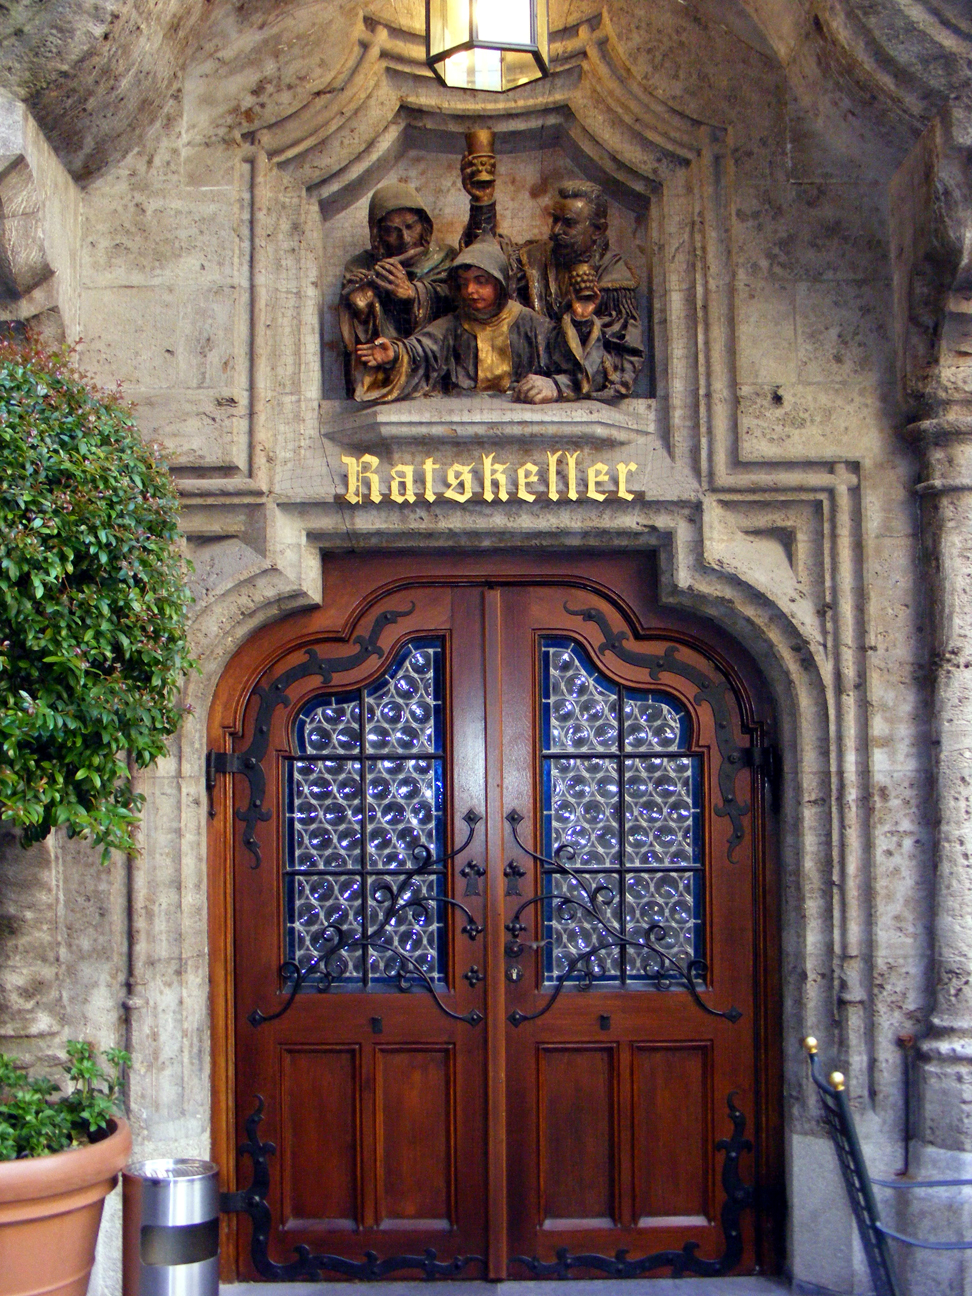 Munich city hall ratskeller entrance (photo by License to Crennelate)